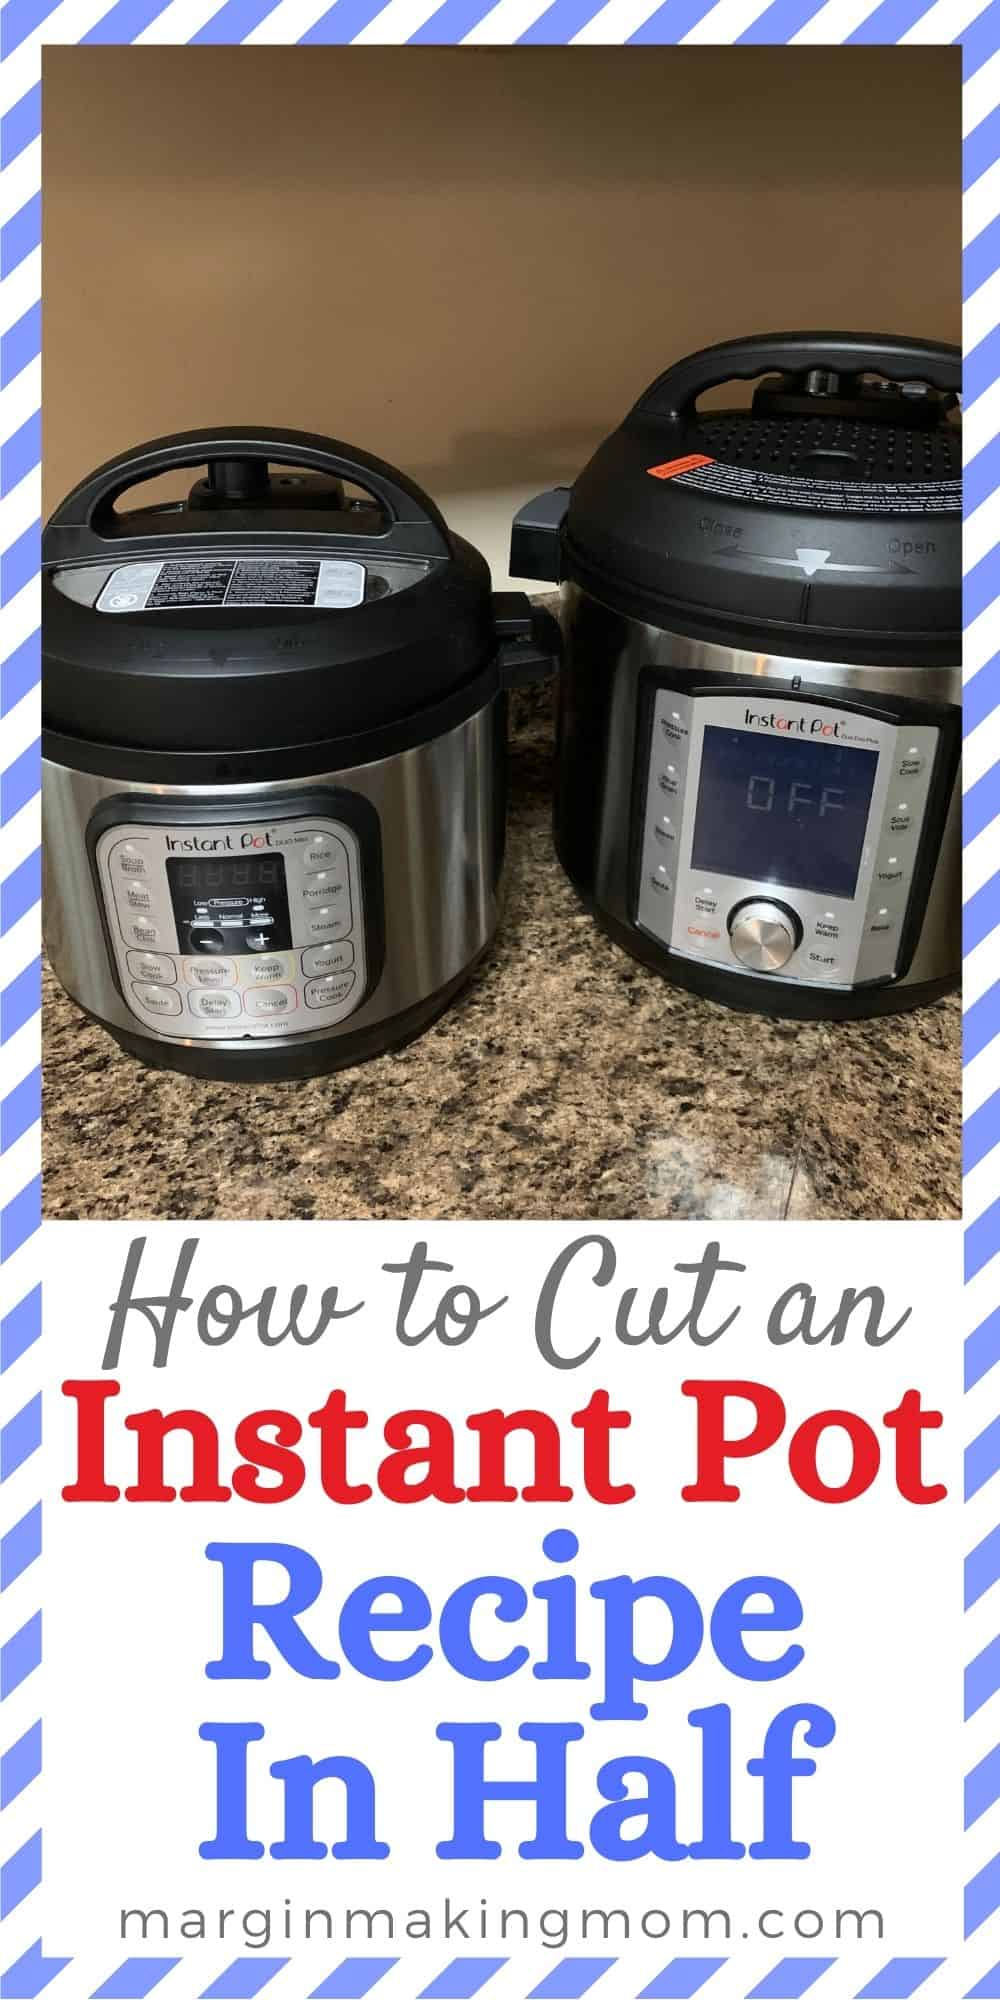 two Instant Pots side by side on a kitchen counter. One is a smaller 3-quart mini, and the other is a regular 6-quart model.